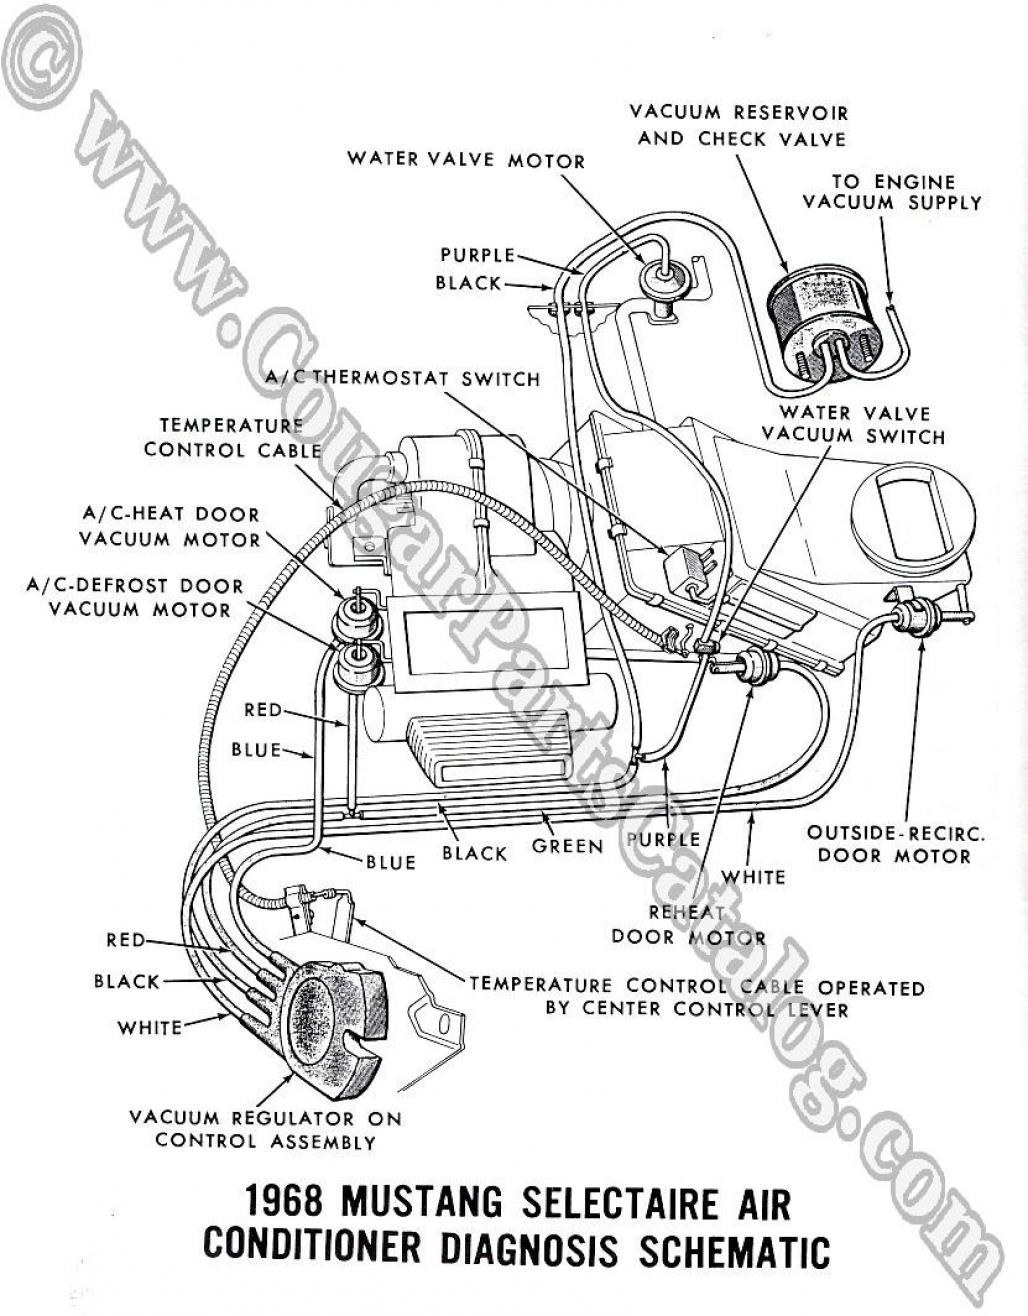 1968 mustang tach wiring diagram ae 0288  diagram furthermore 1966 ford mustang power steering  diagram furthermore 1966 ford mustang